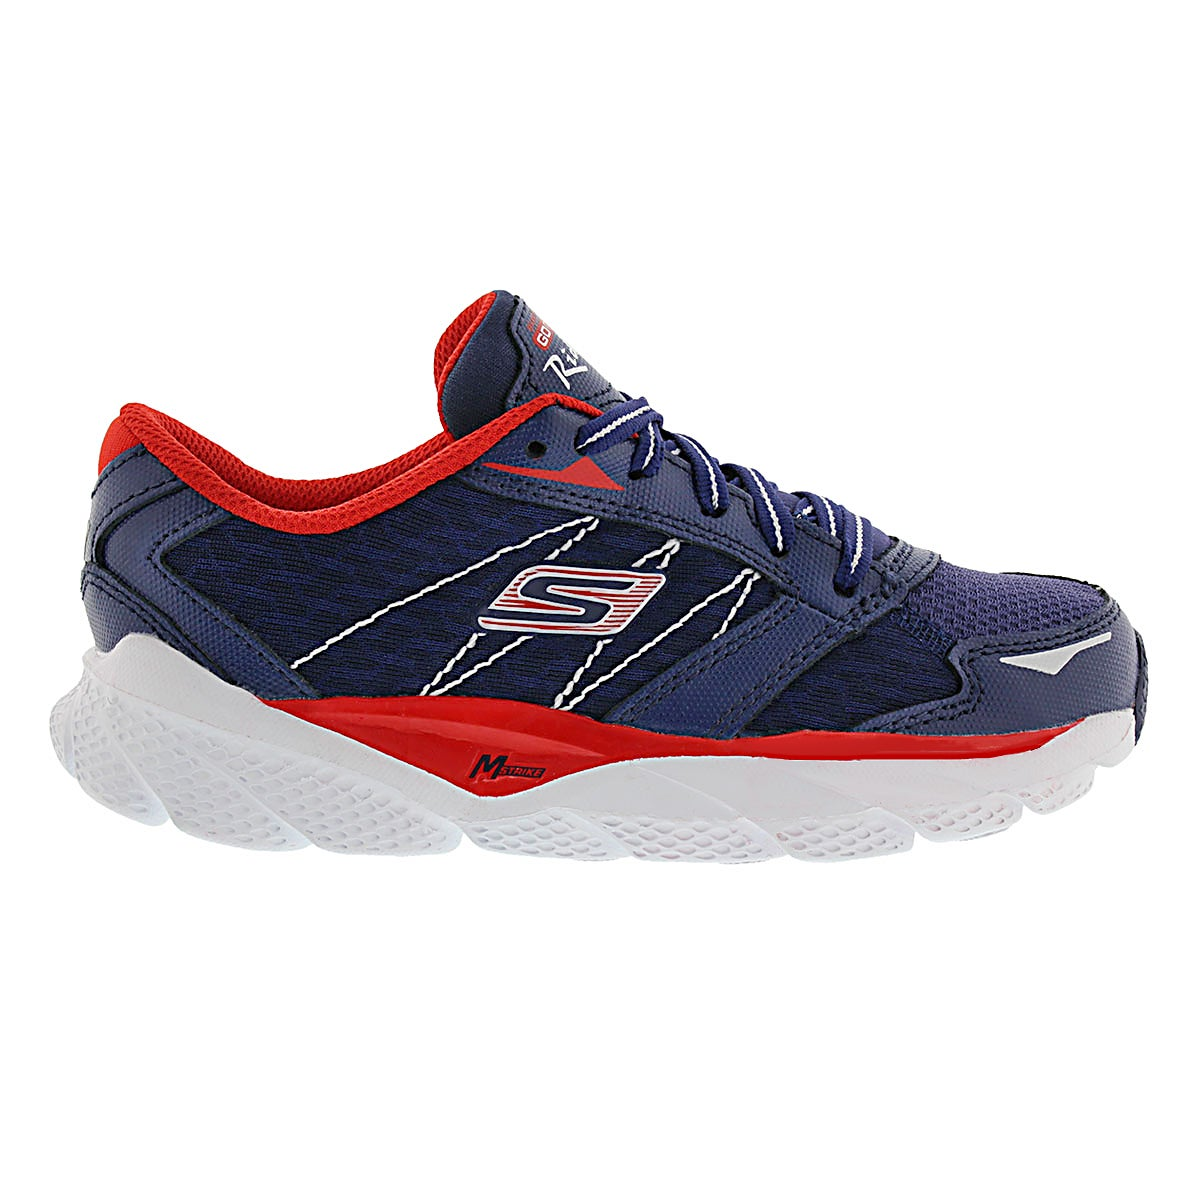 Bys Ultra Ride navy/red lace up runner